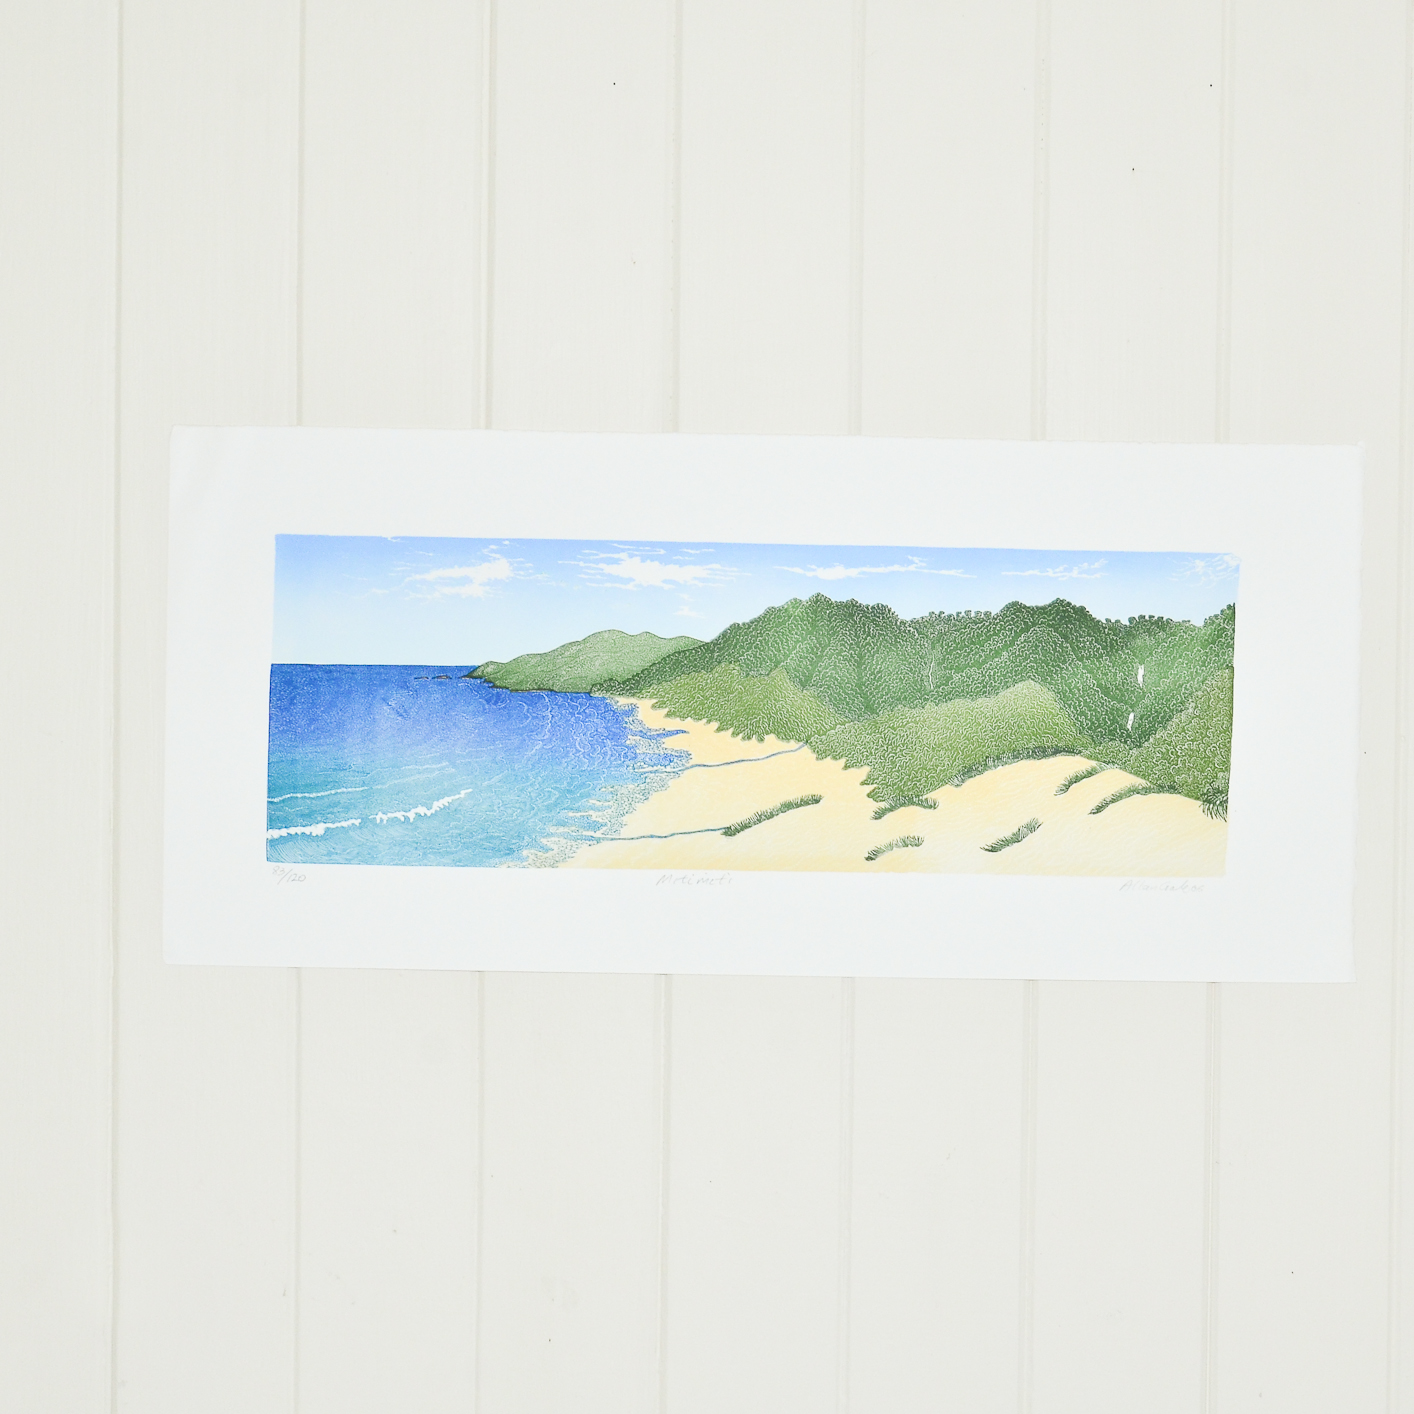 wood block print of miti miti beach by Allan Gale